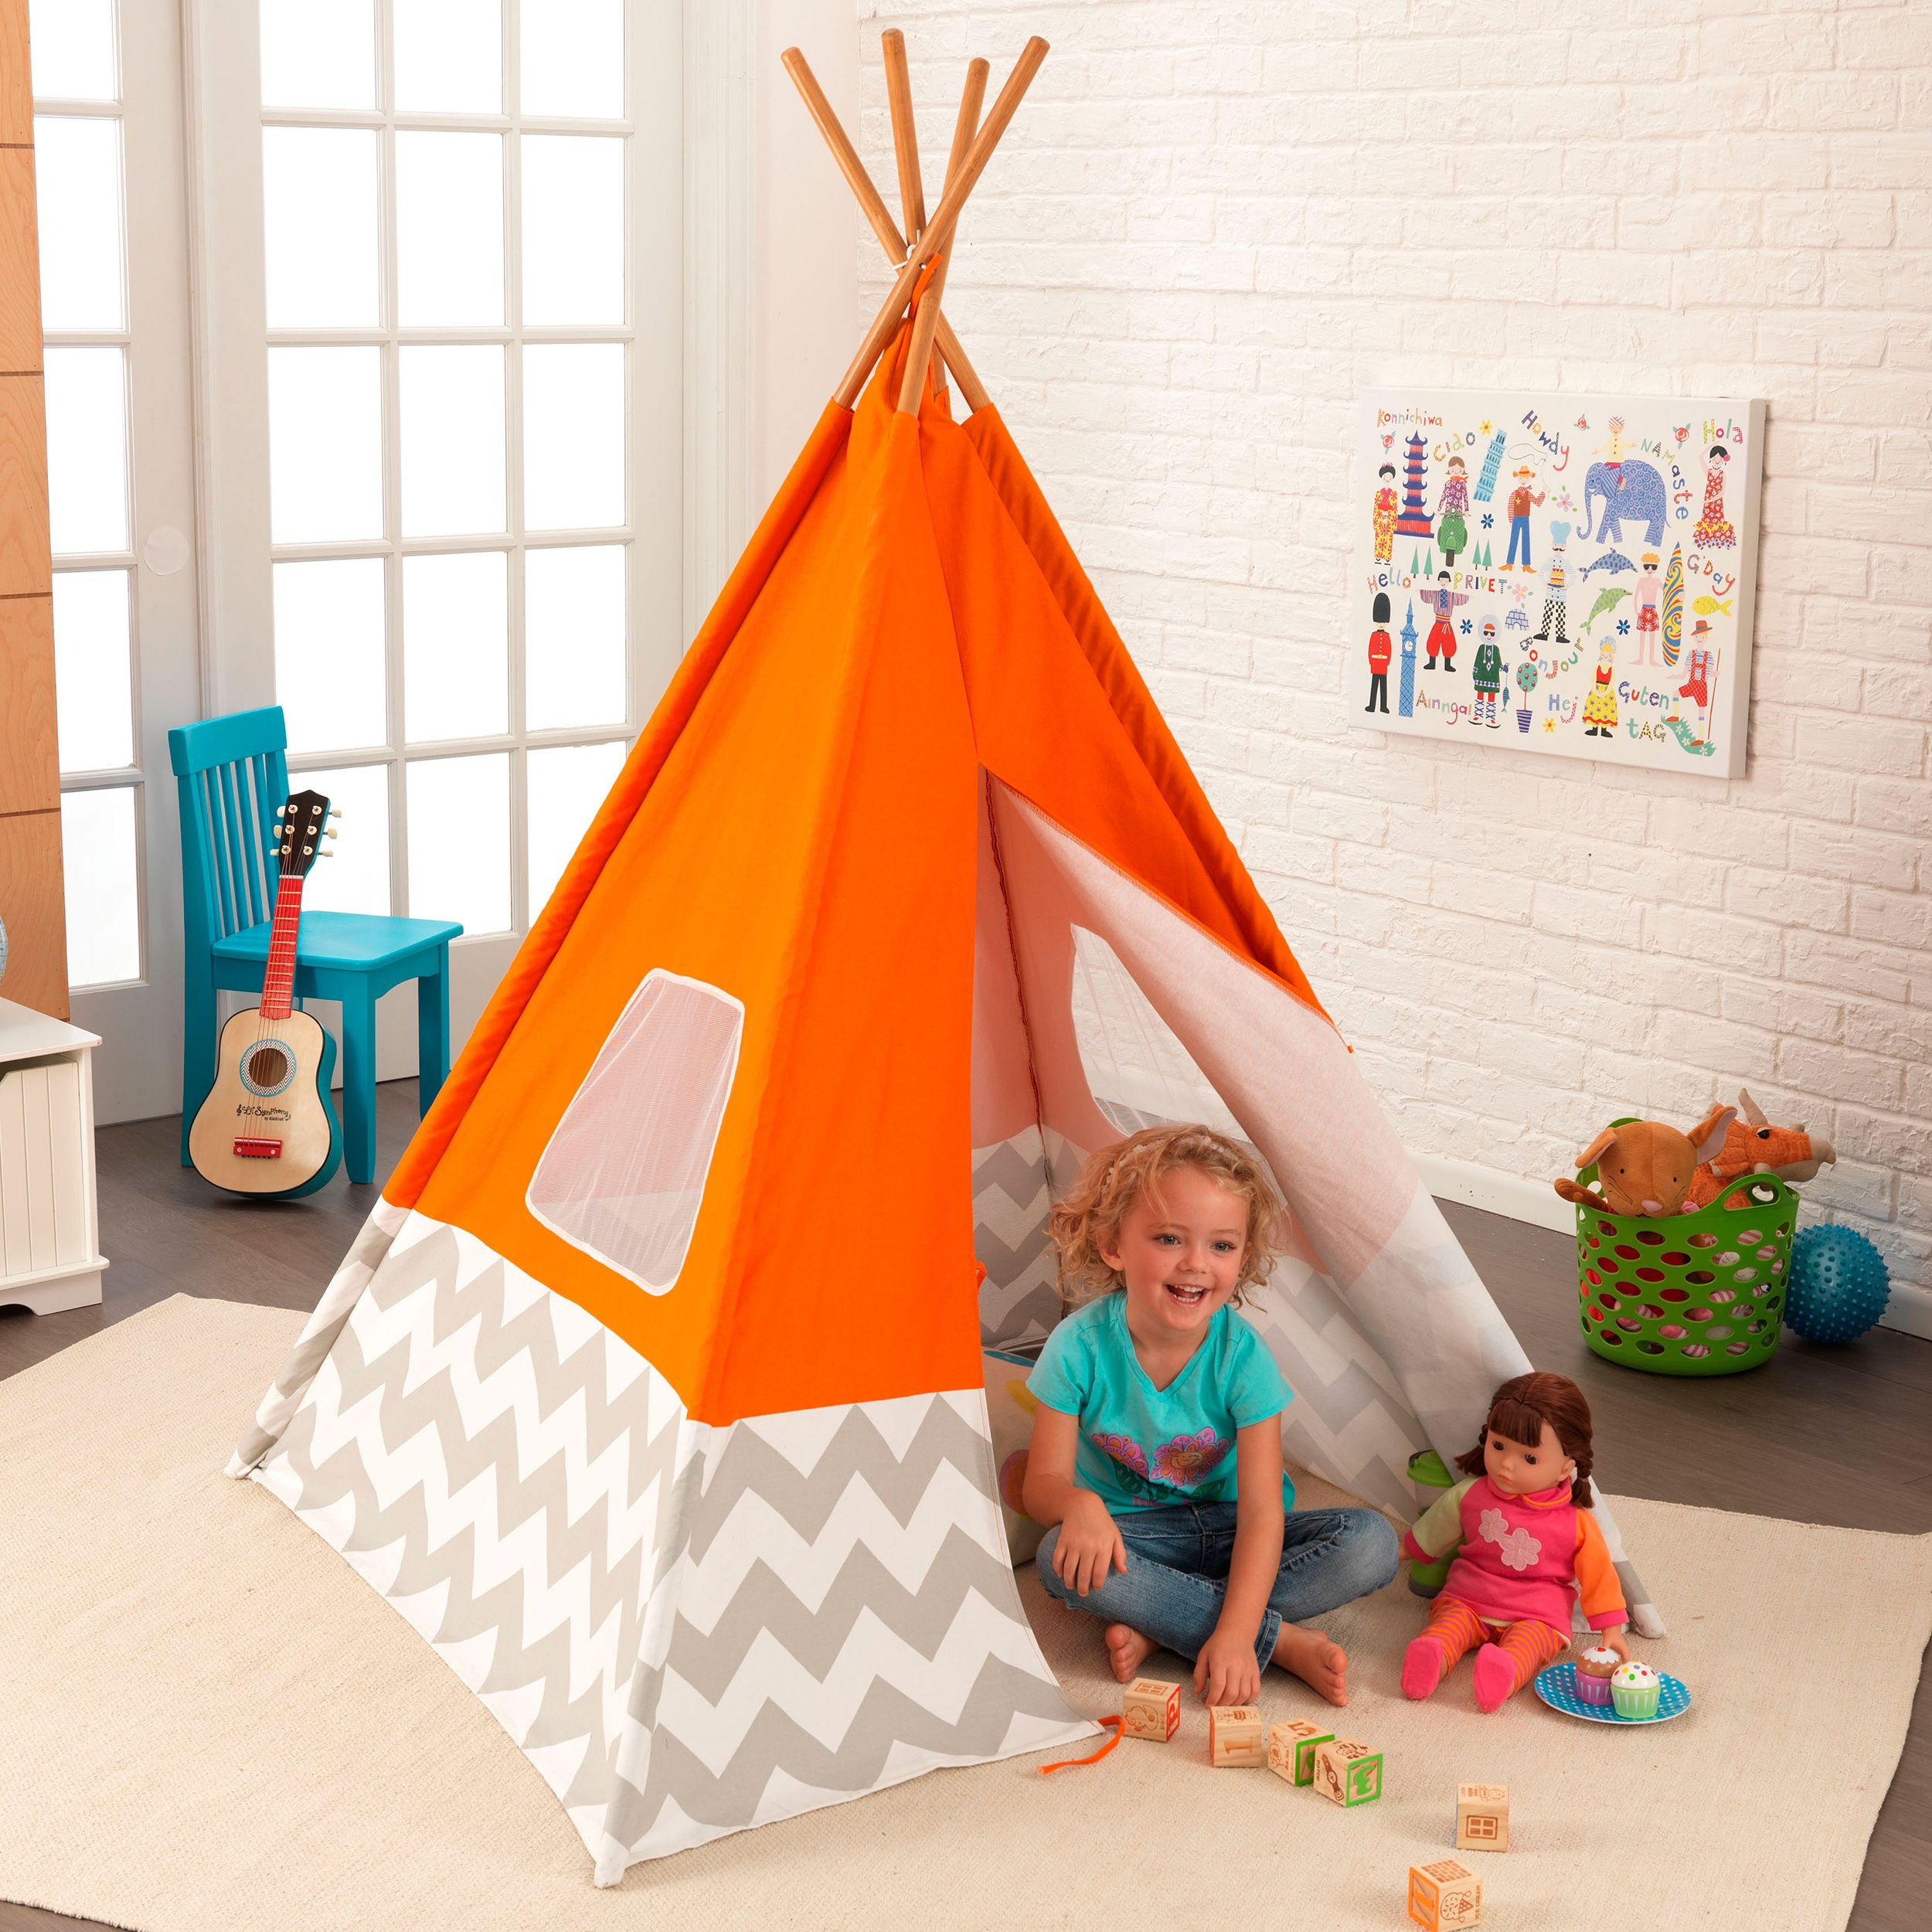 Kids Teepee Orange Play Tent  sc 1 st  Pinterest & Kids Teepee Orange Play Tent | Mateos play | Pinterest | Tents ...